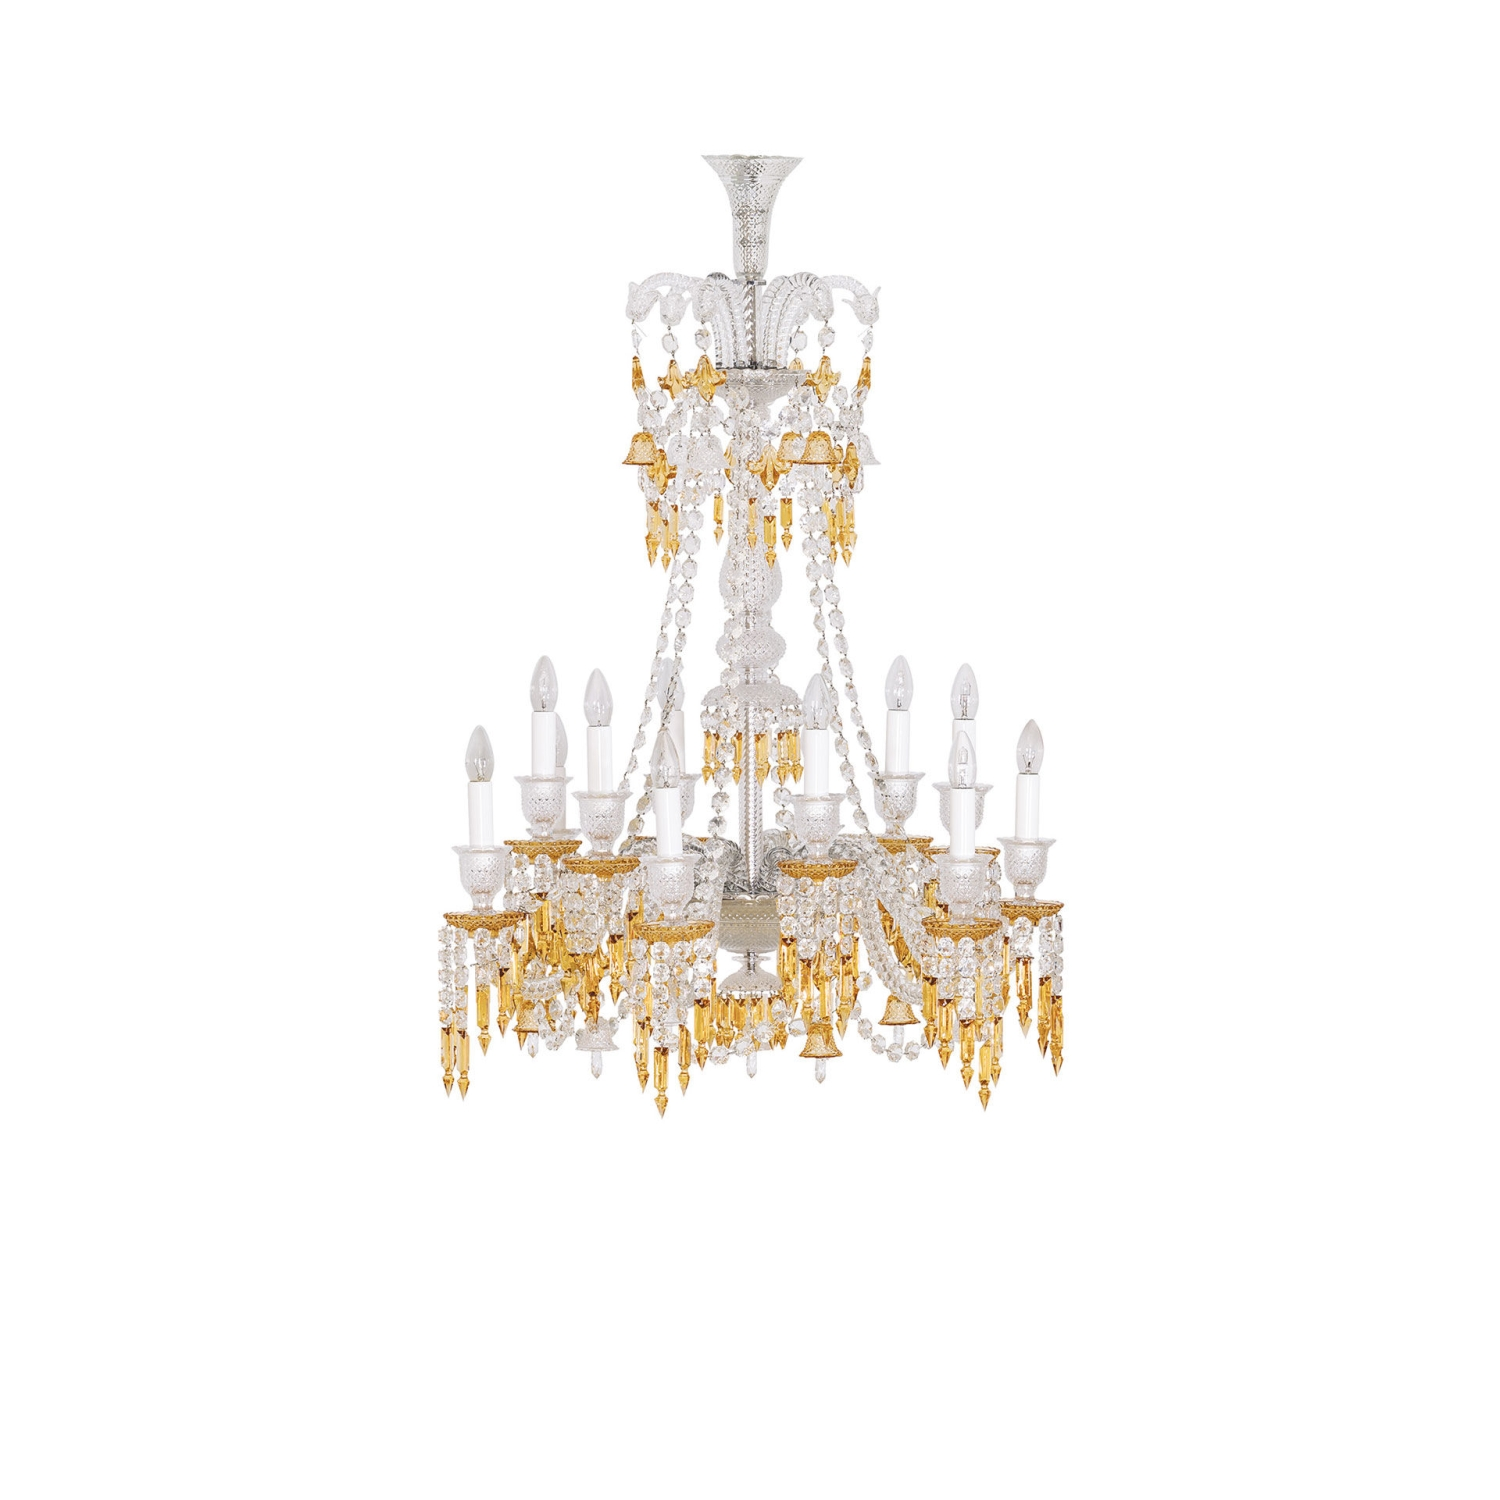 Chandelier 12l baccarat zenith charleston 2809416 chandelier 12 lights long baccarat arubaitofo Choice Image